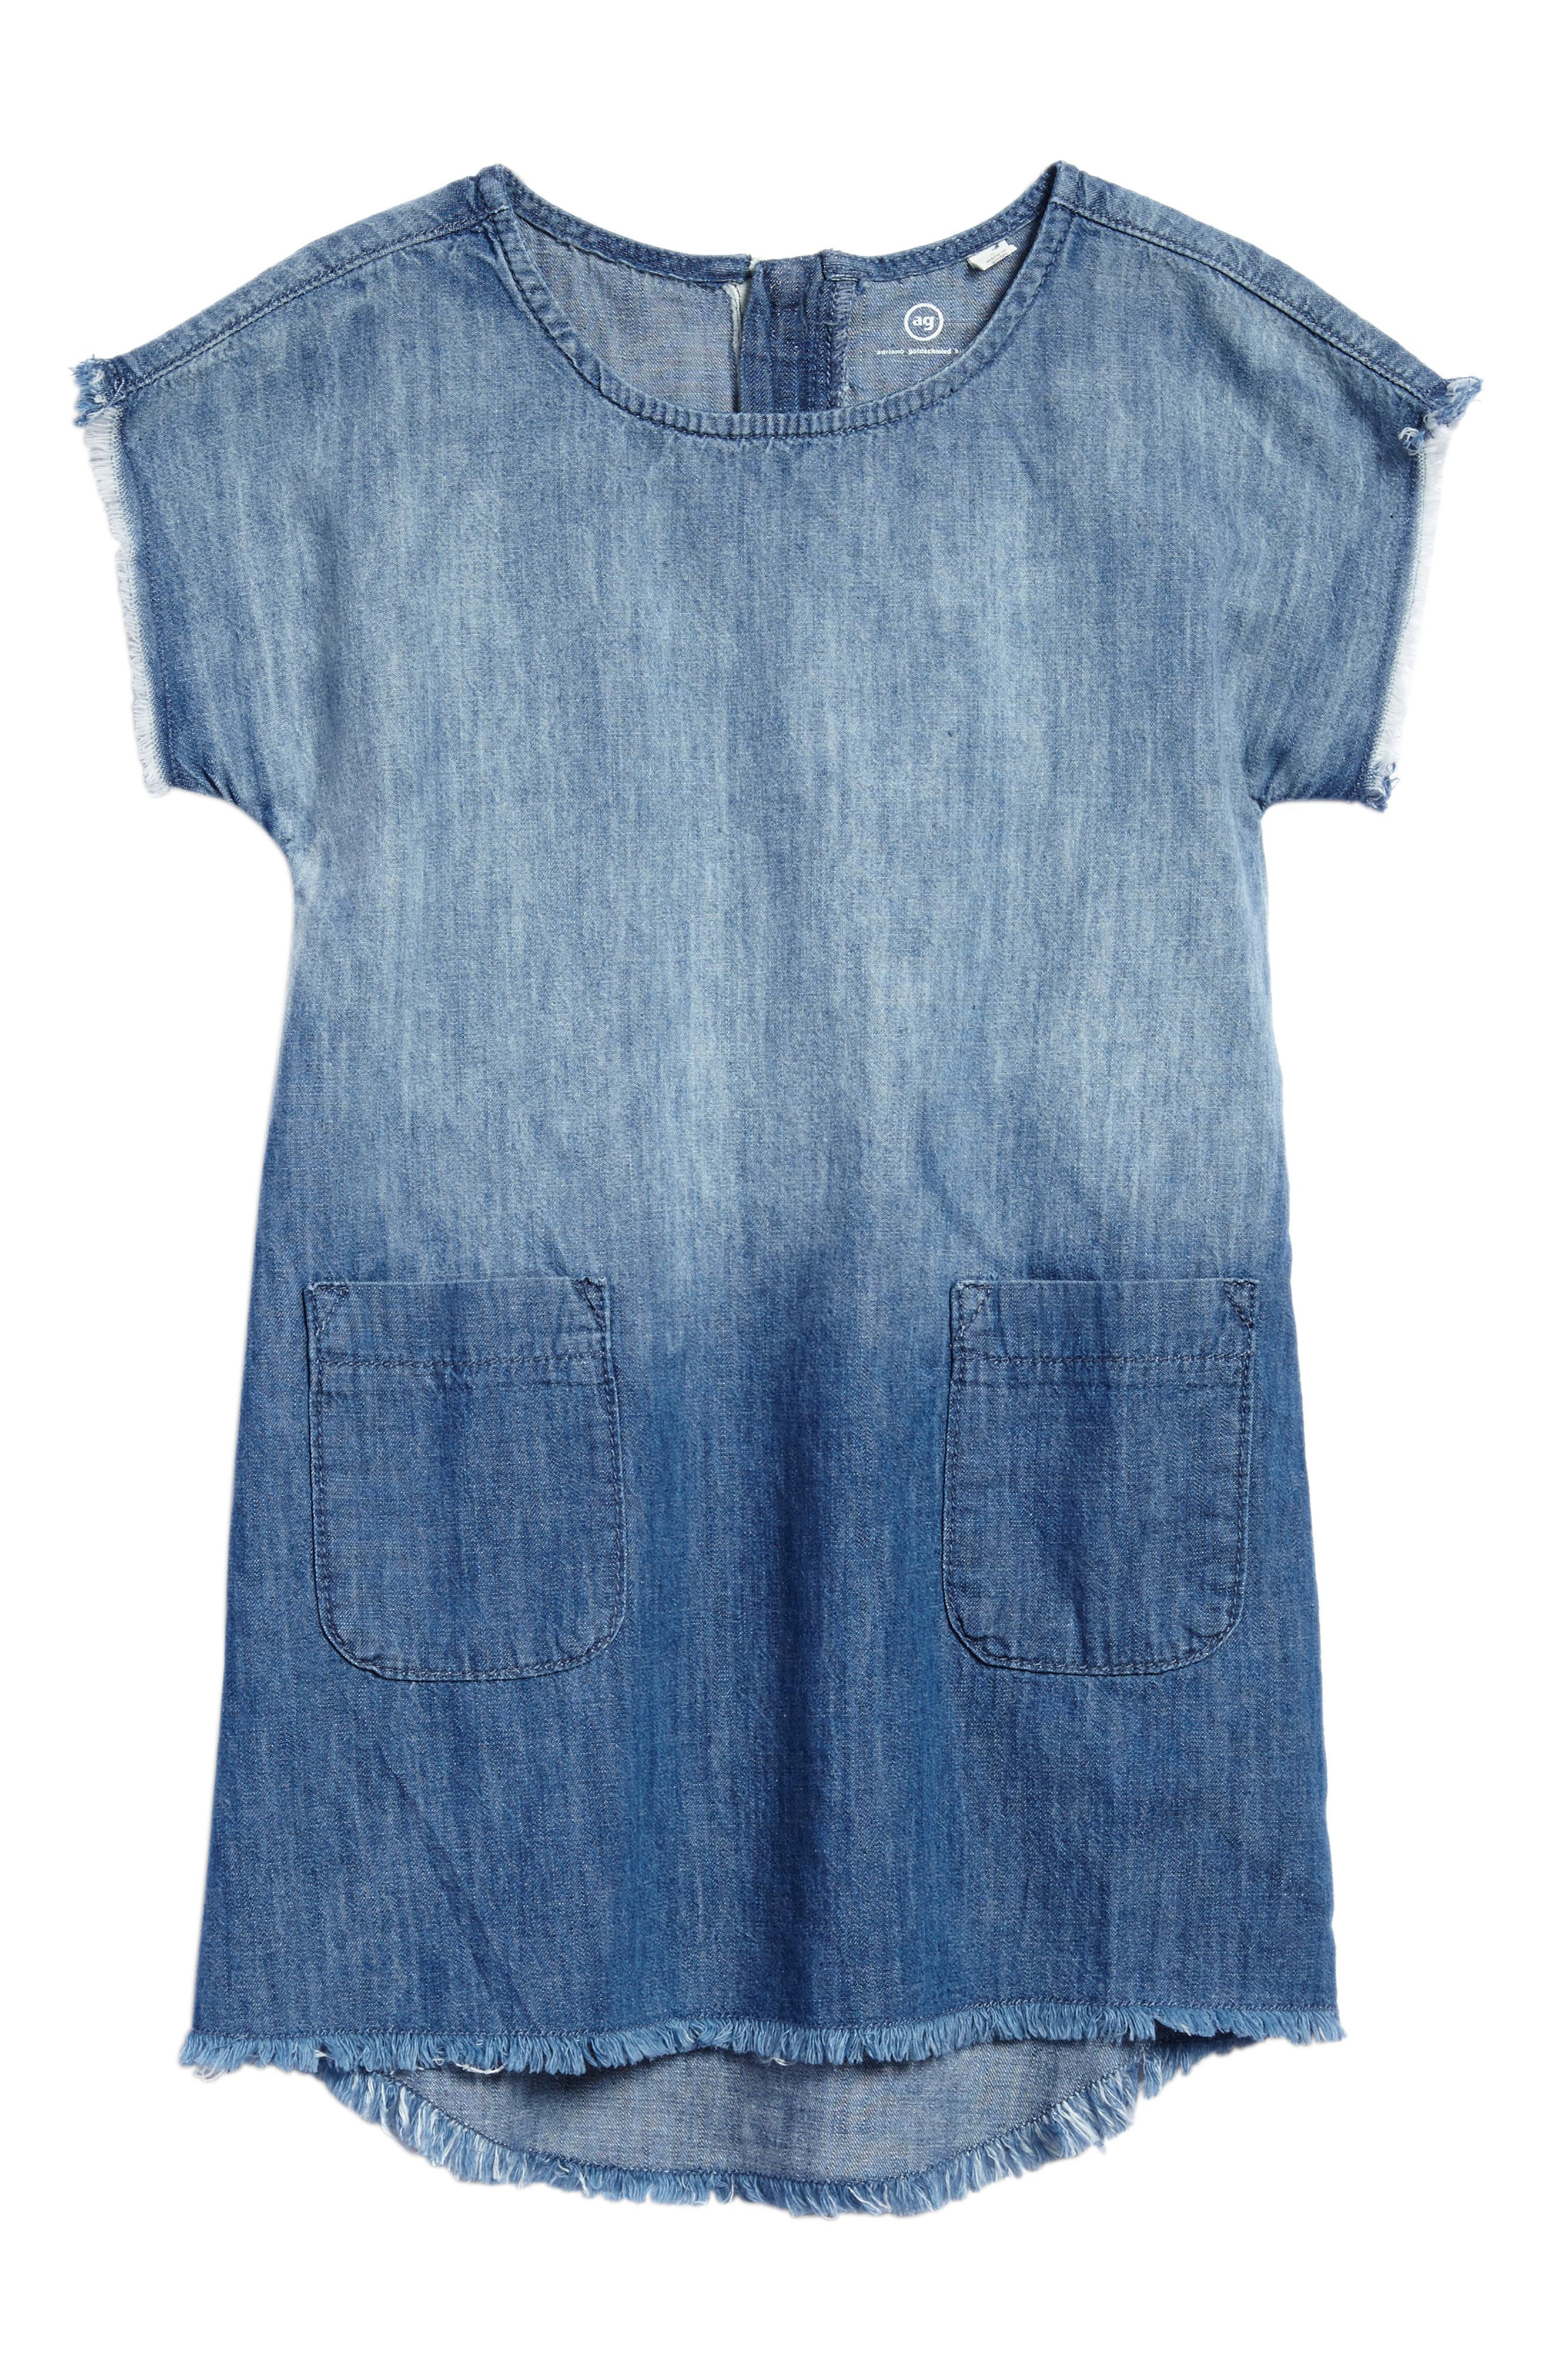 Alternate Image 1 Selected - ag adriano goldschmied kids Dip Dye Chambray Dress (Big Girls)